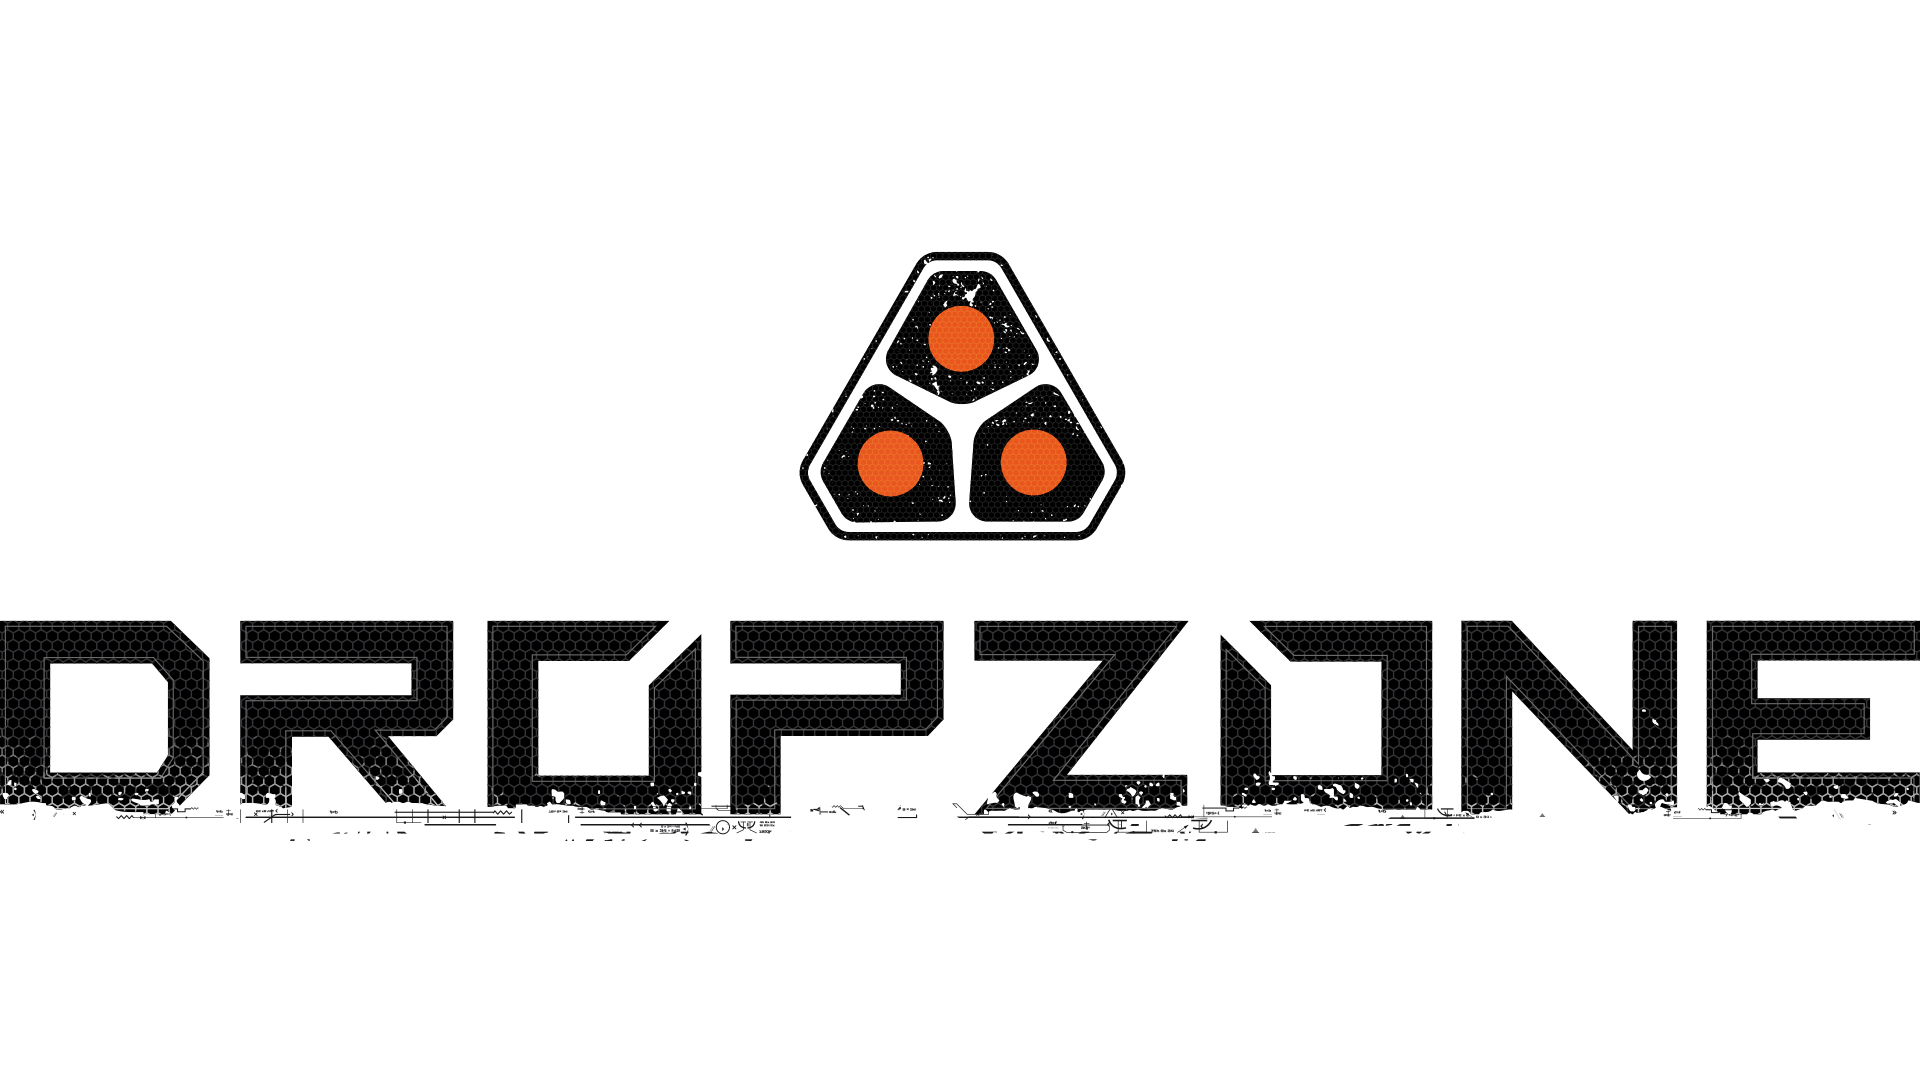 DROPZONE Enters Closed Beta with 1st Tournament Starting Tomorrow, July 23